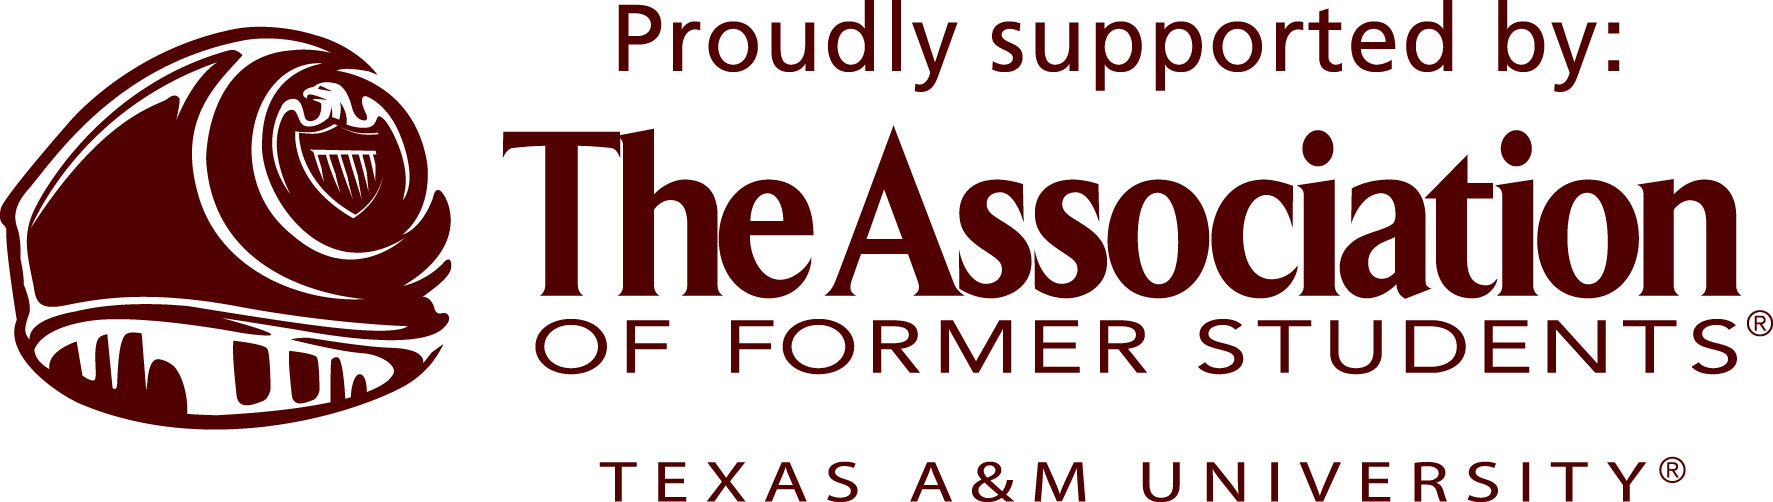 Logo: Proudly Supported by The Association of Former Students